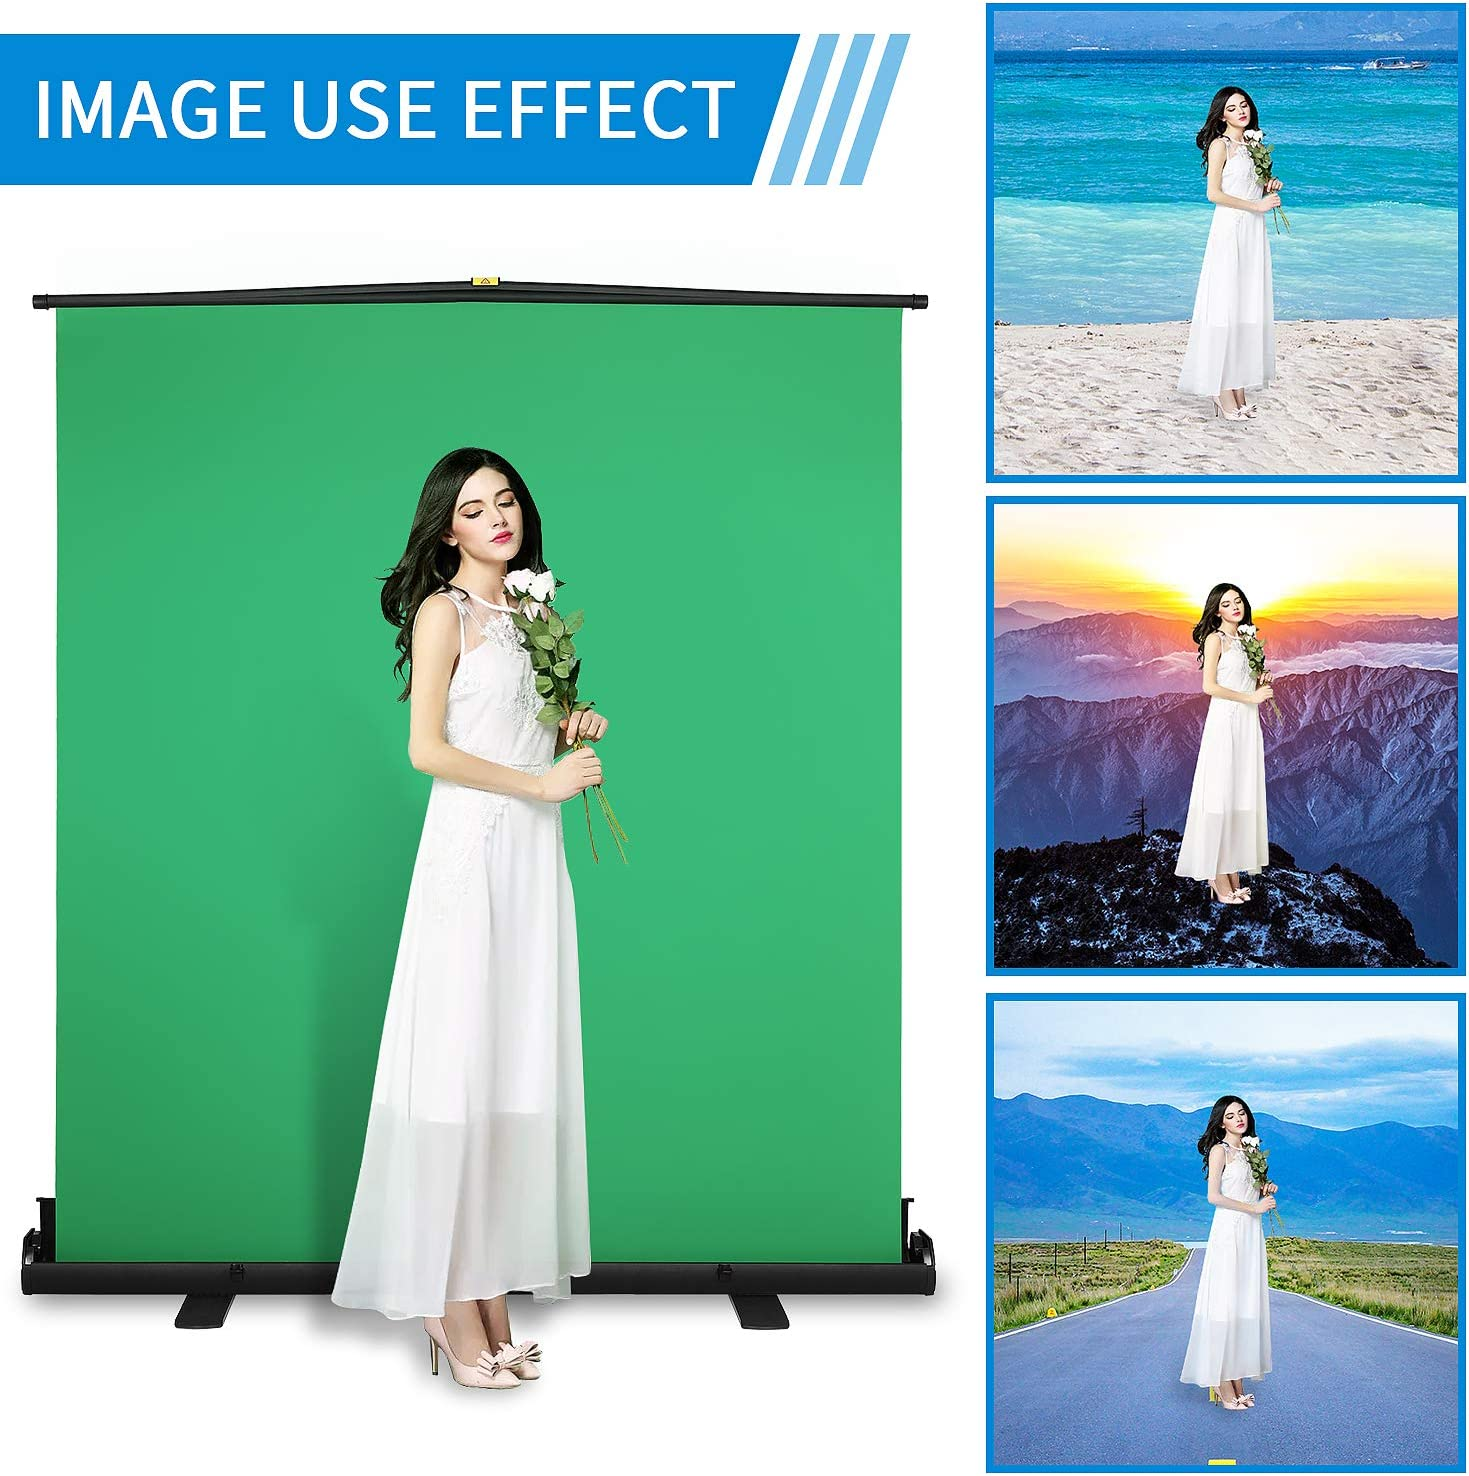 Chroma Key Screen with Wrinkle-Resistant Fabric ShowMaven 80.7 x 58.3 Green Screen Collapsible Chromakey Panel for Background Removal with Auto-Locking Frame Aluminum Hard Case